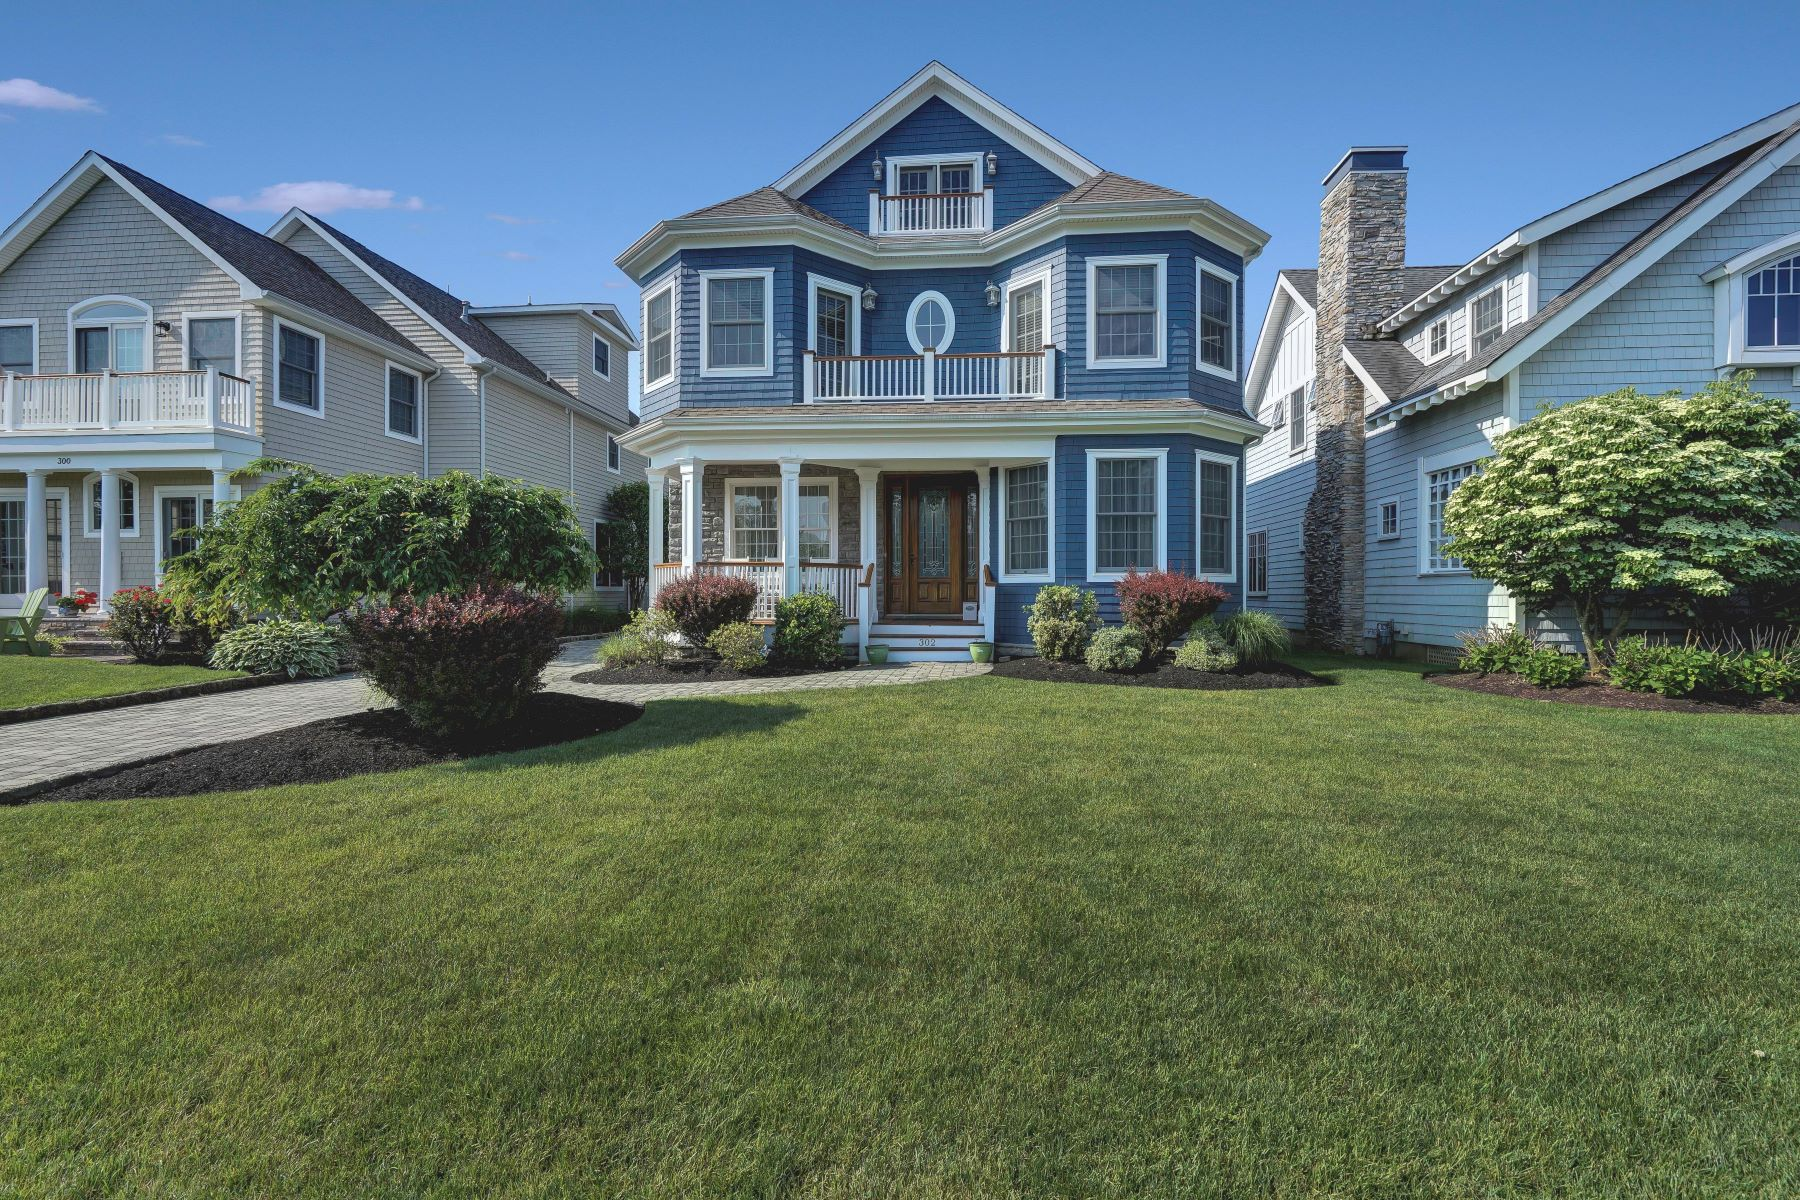 Single Family Homes for Sale at Casual Elegance 302 Beacon Boulevard, Sea Girt, New Jersey 08750 United States